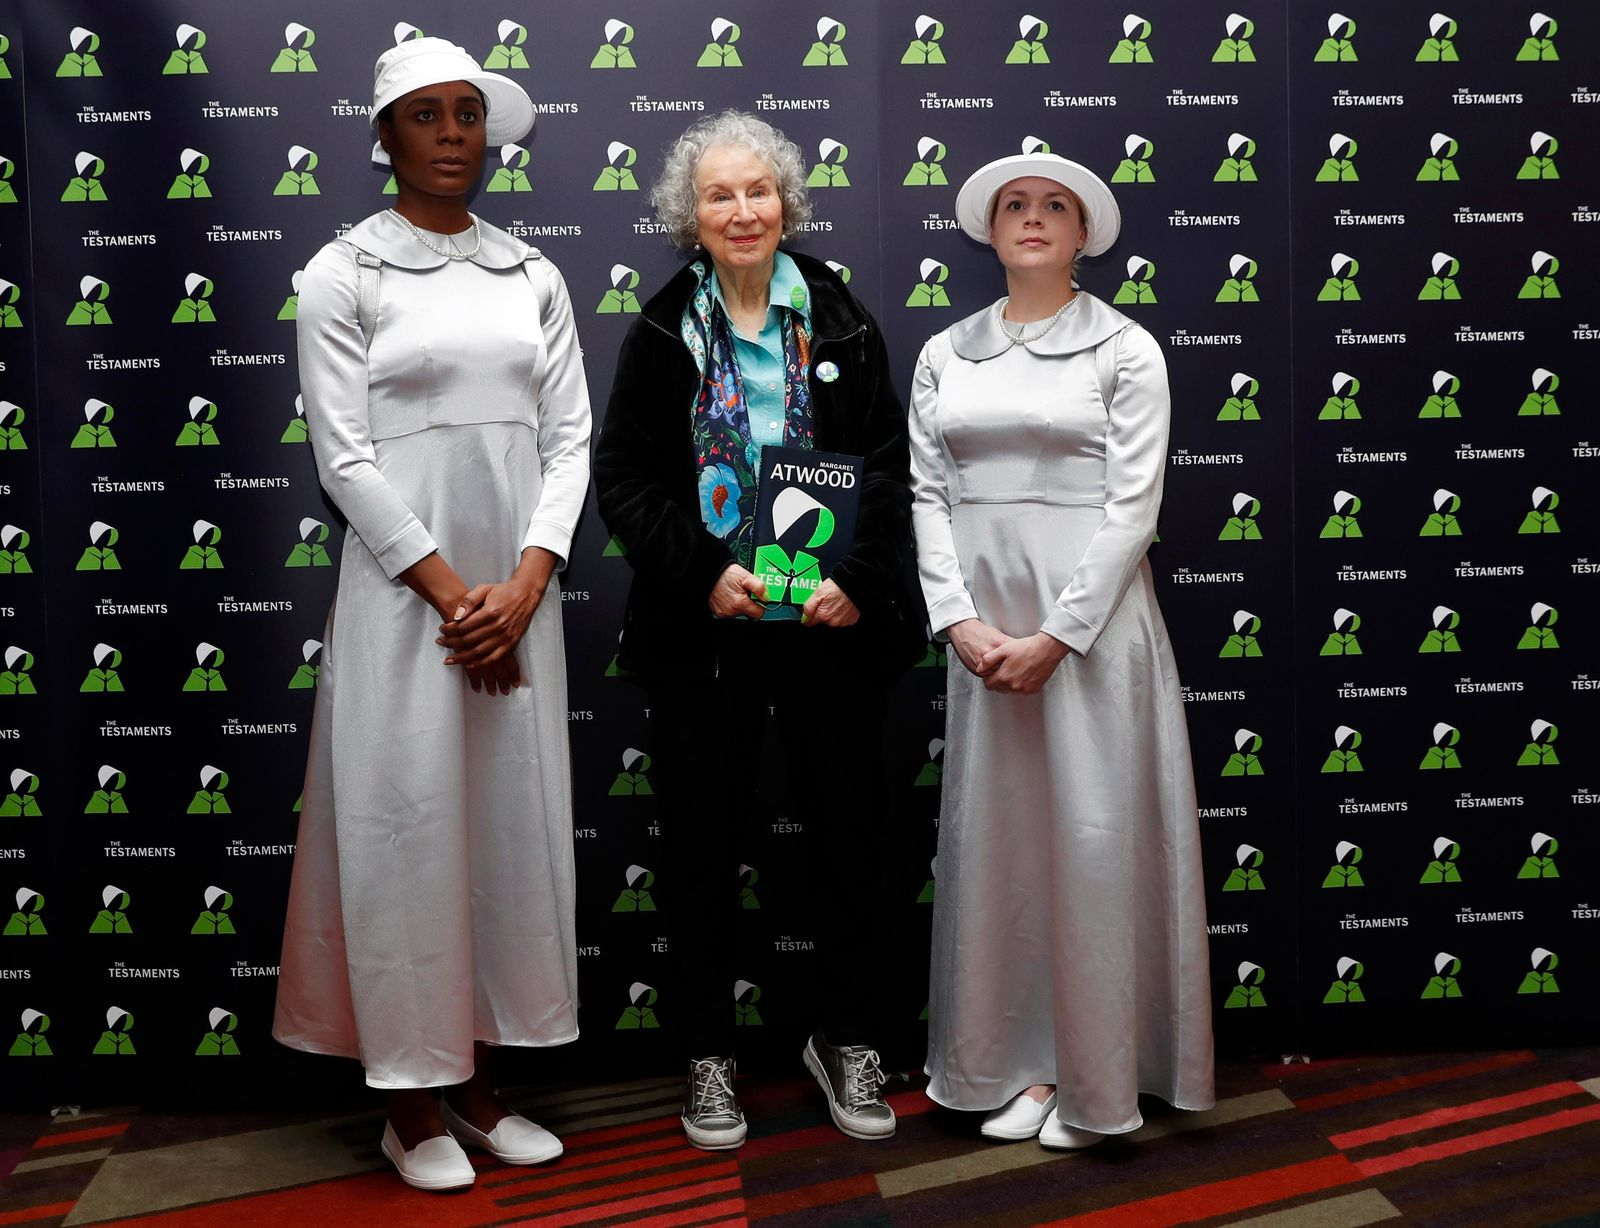 Canadian author Margaret Atwood poses with two models for a photograph during a press conference at the British Library to launch her new book 'The Testaments' in London, Tuesday, Sept. 10, 2019. (AP Photo/Alastair Grant)